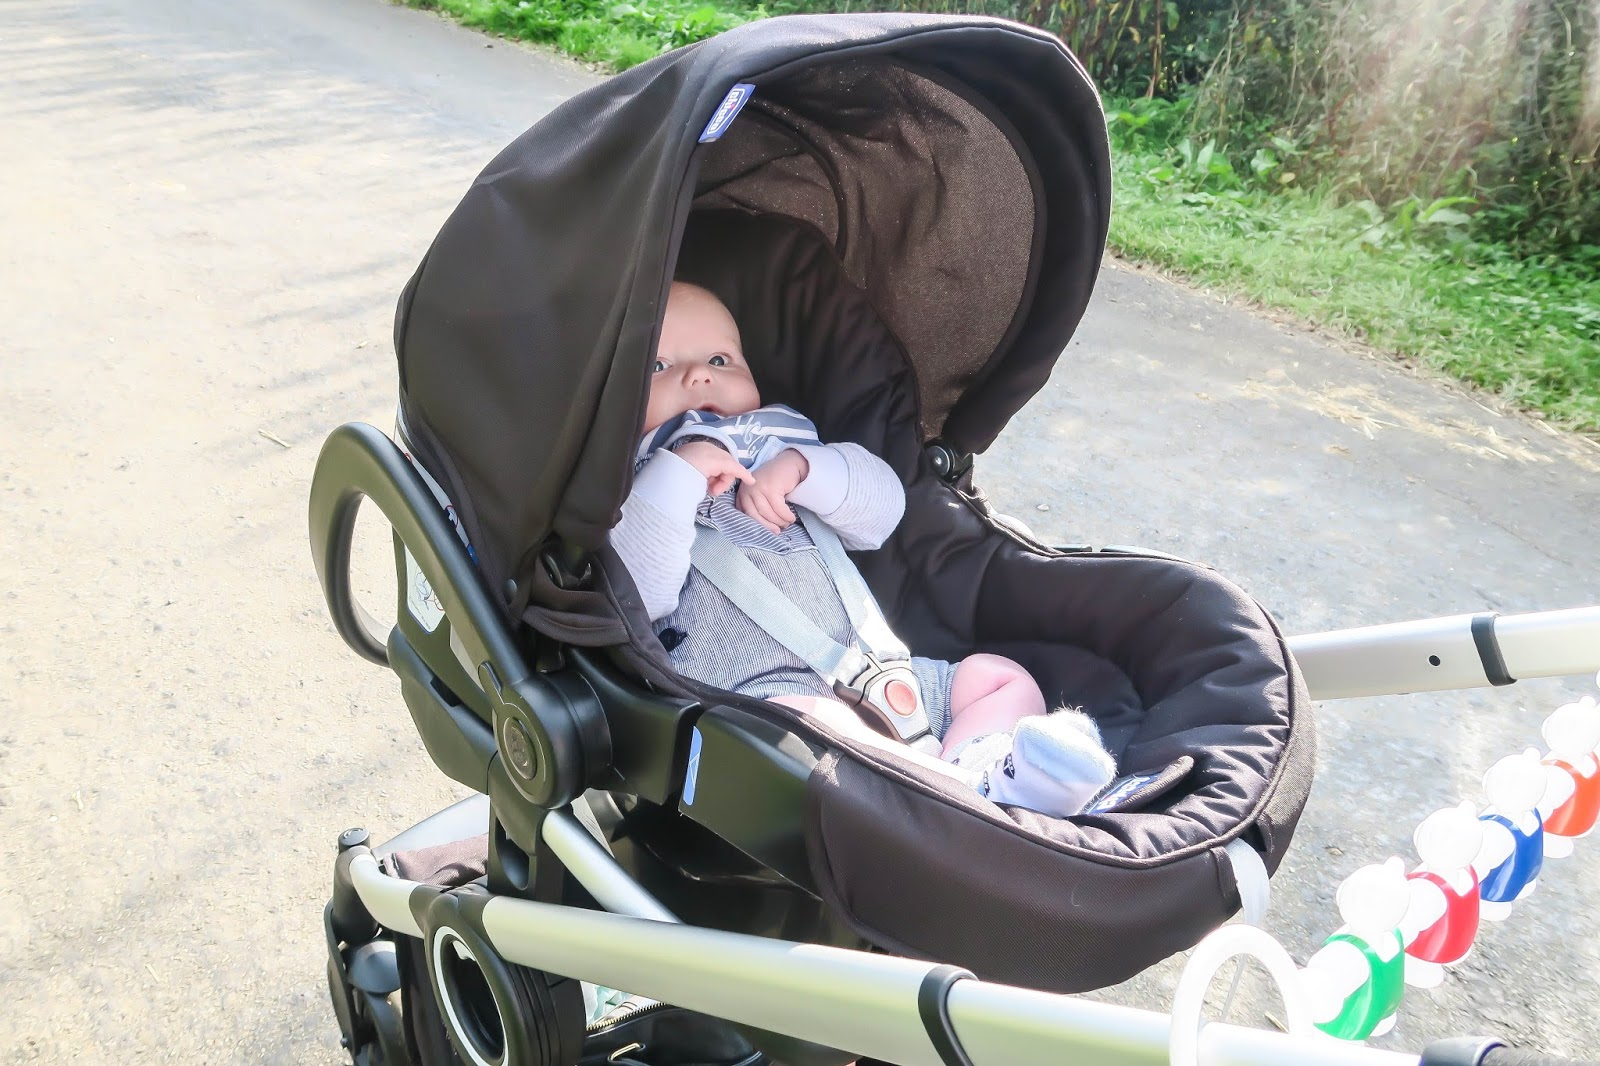 chicco urban travel system review bump to baby beyond blog uk based family lifestyle blog. Black Bedroom Furniture Sets. Home Design Ideas